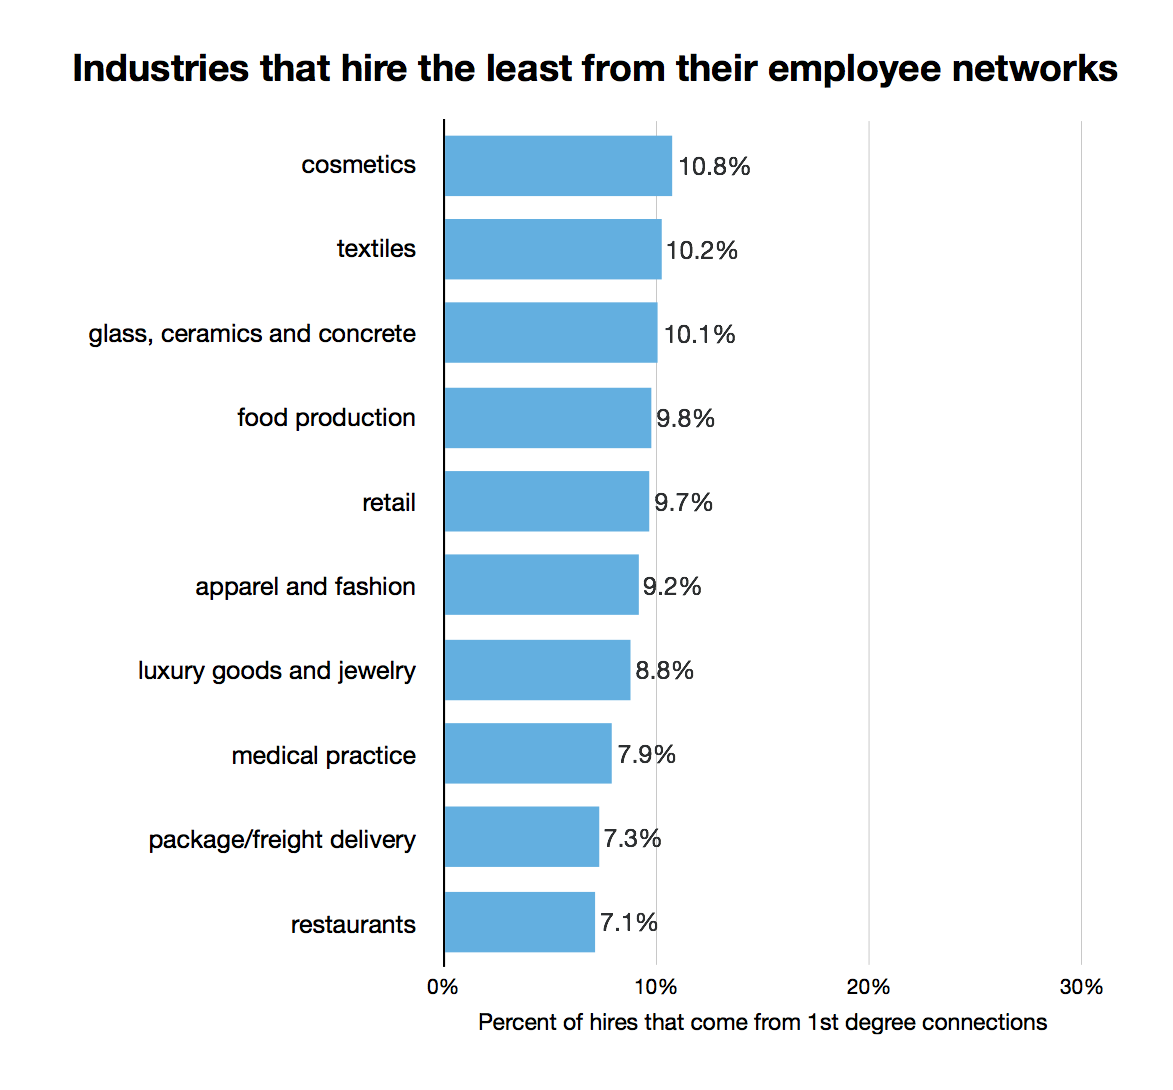 industries that higher least from first degree